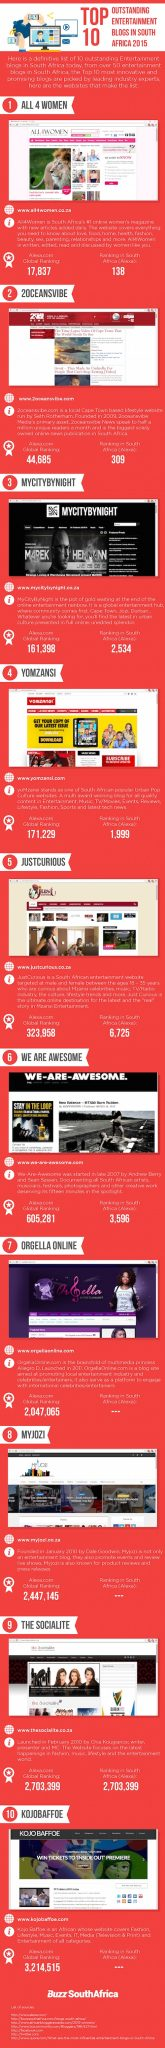 south_africa_entertainment_infographic copy